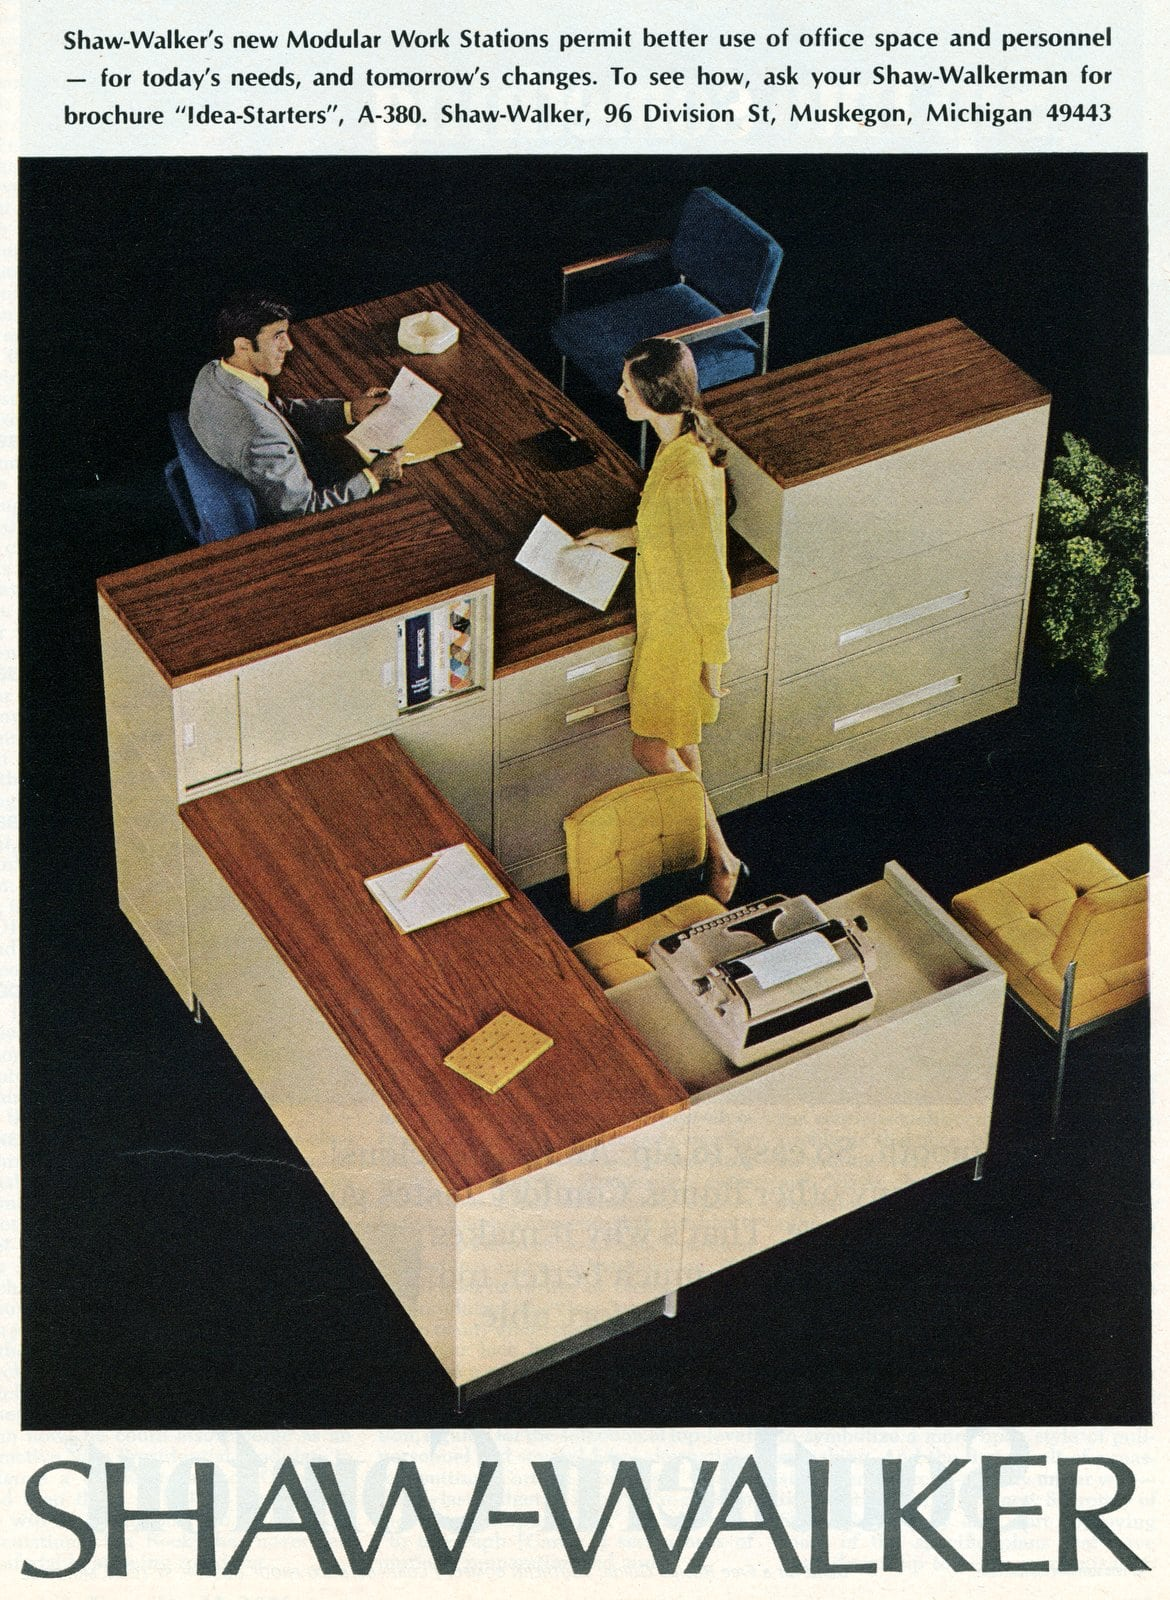 Retro seventies Shaw-Walker modular work station setup with desks for an office (1976)